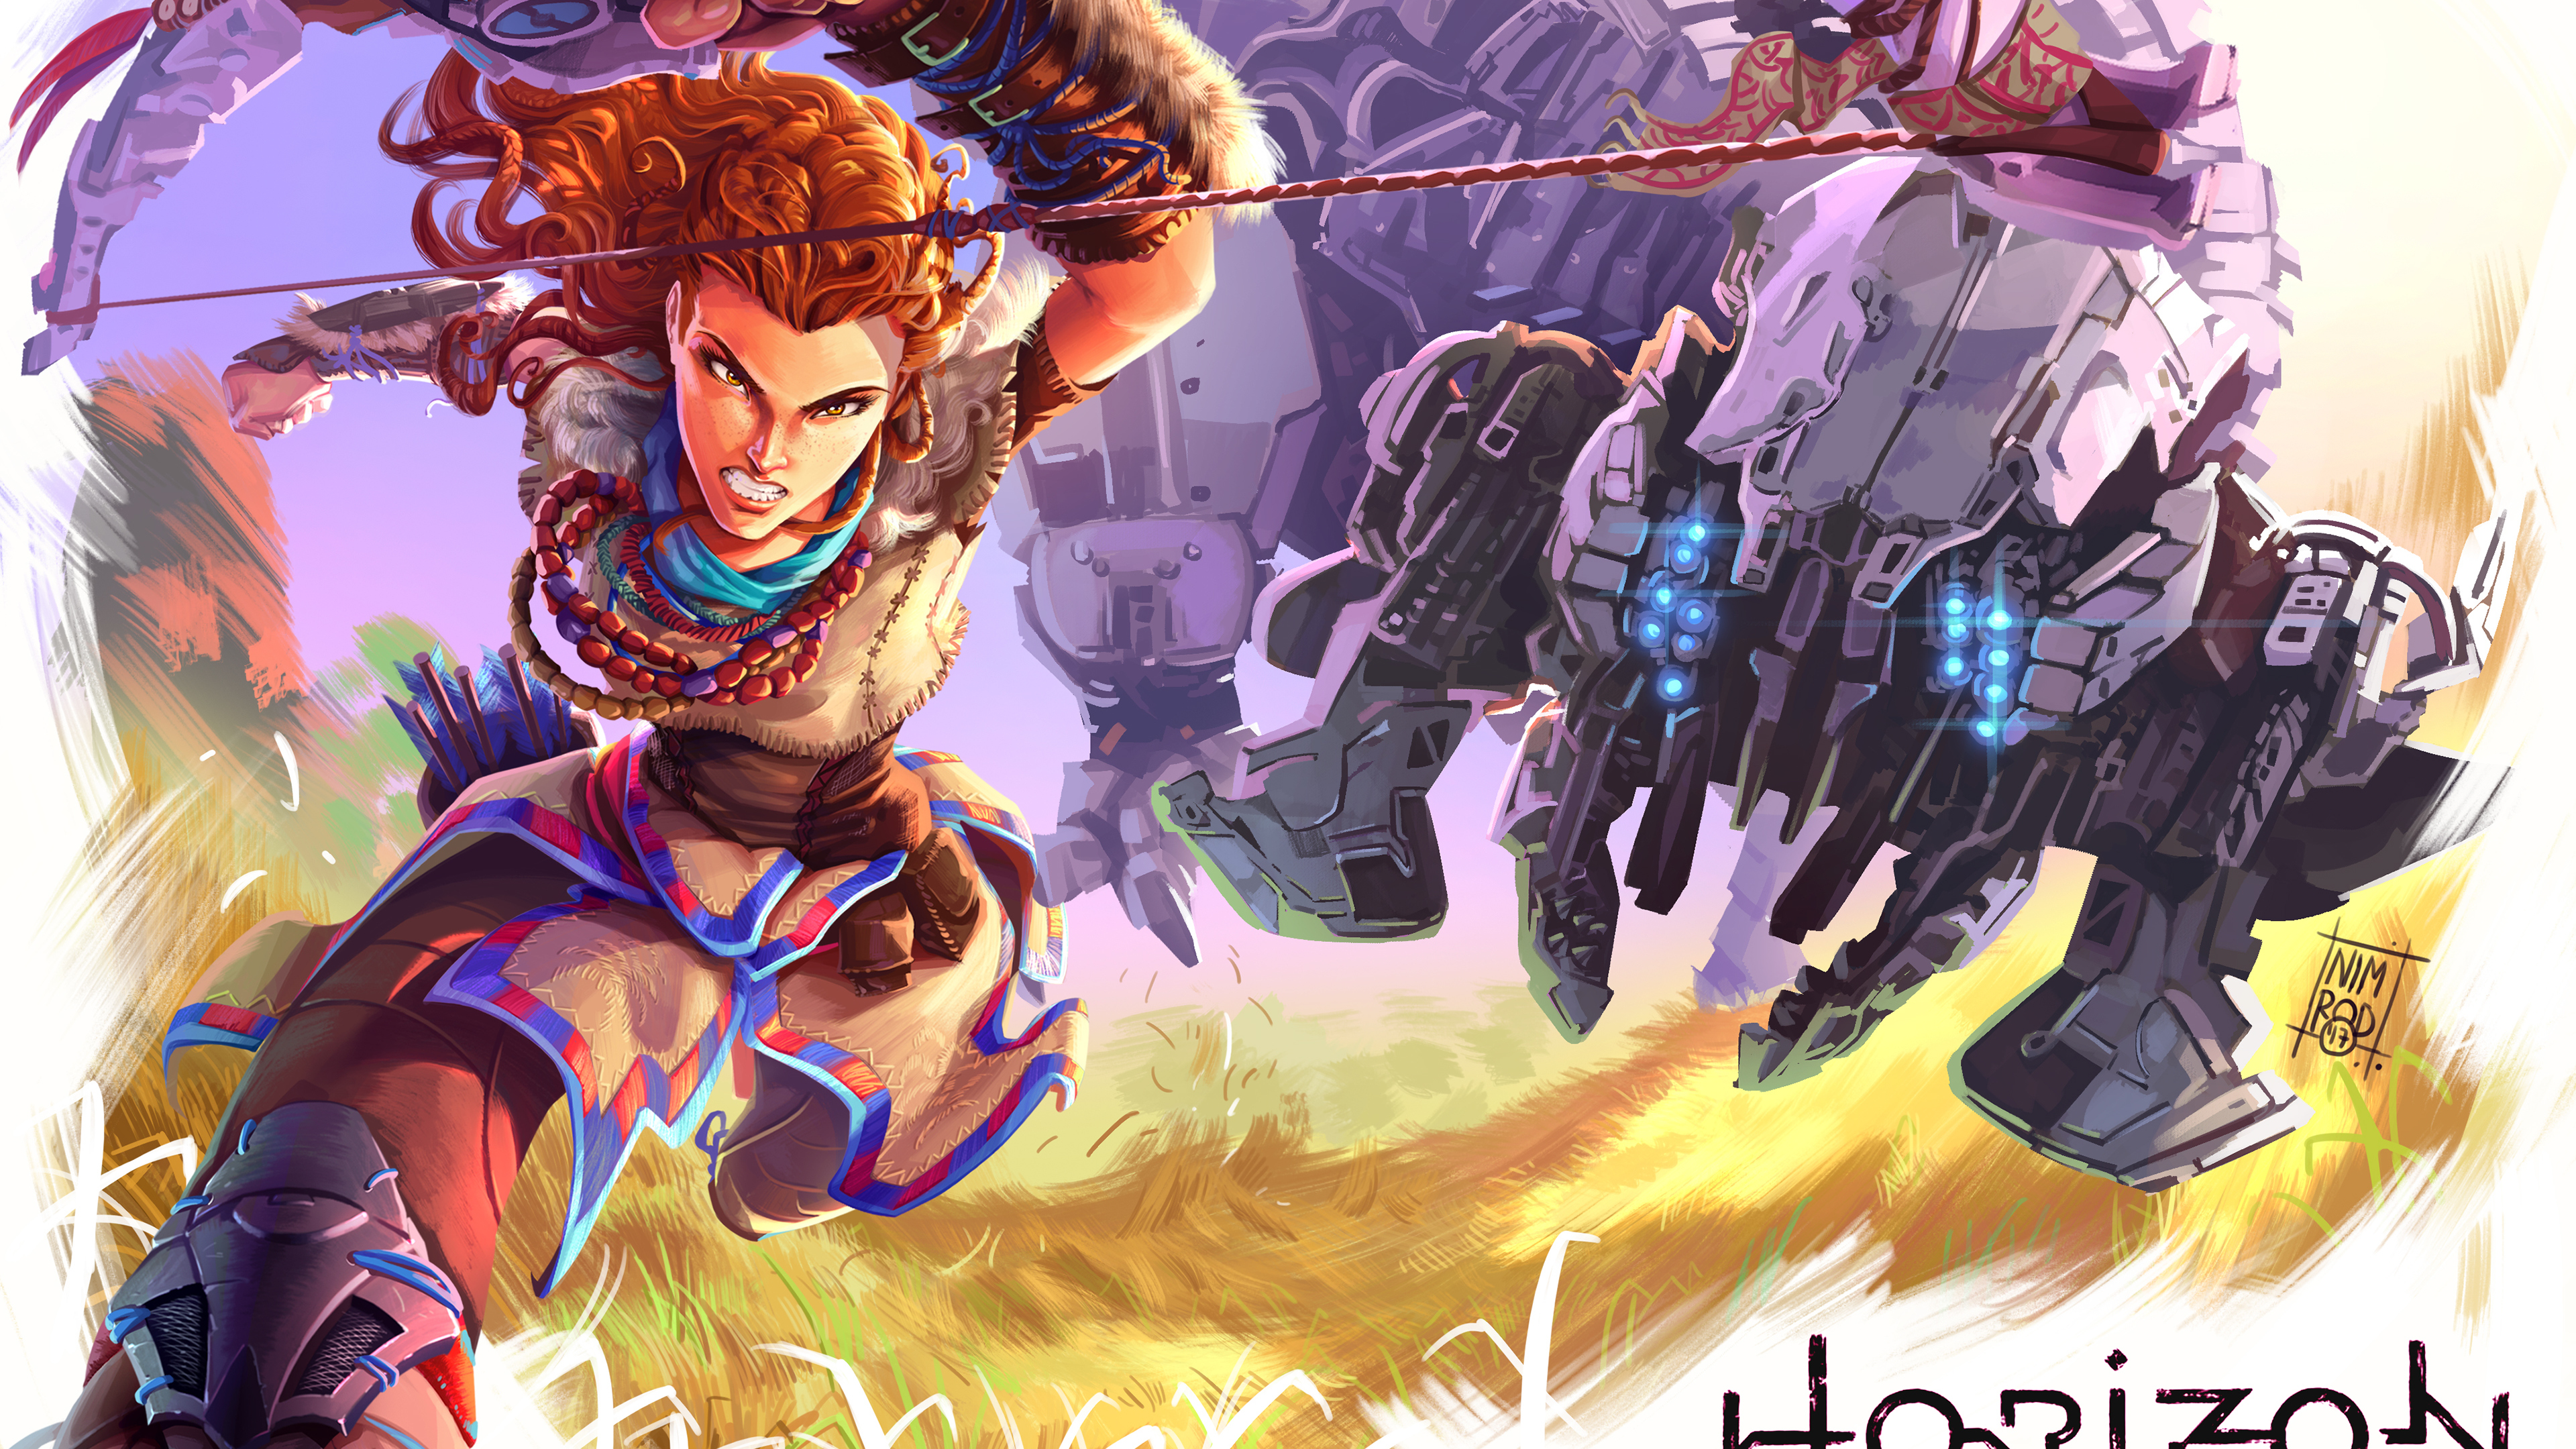 Horizon Zero Dawn 4k Fanart - Horizon Zero Dawn Fan Art , HD Wallpaper & Backgrounds